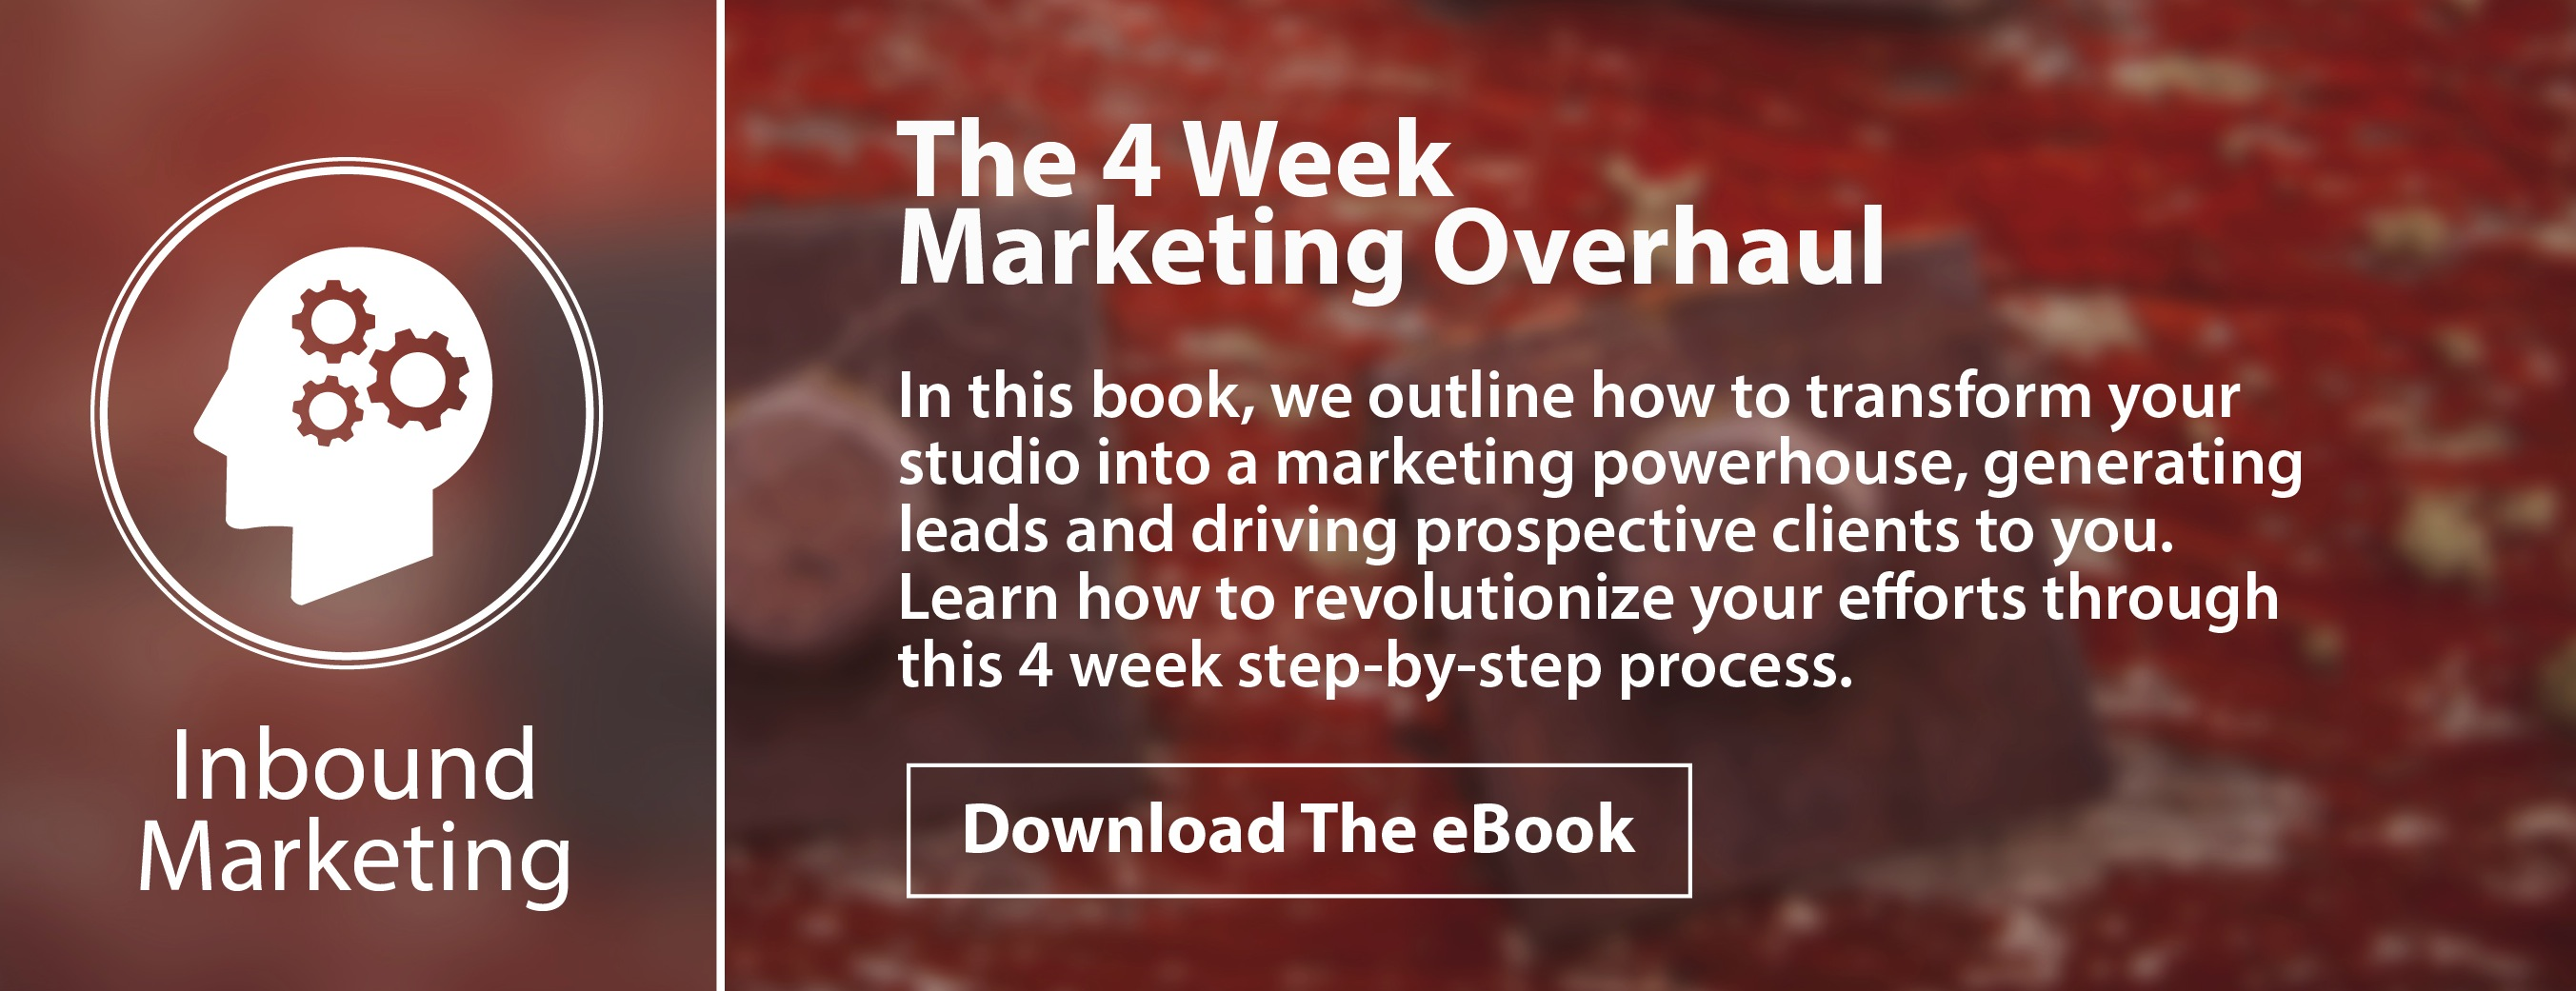 Four Week Marketing Overhaul